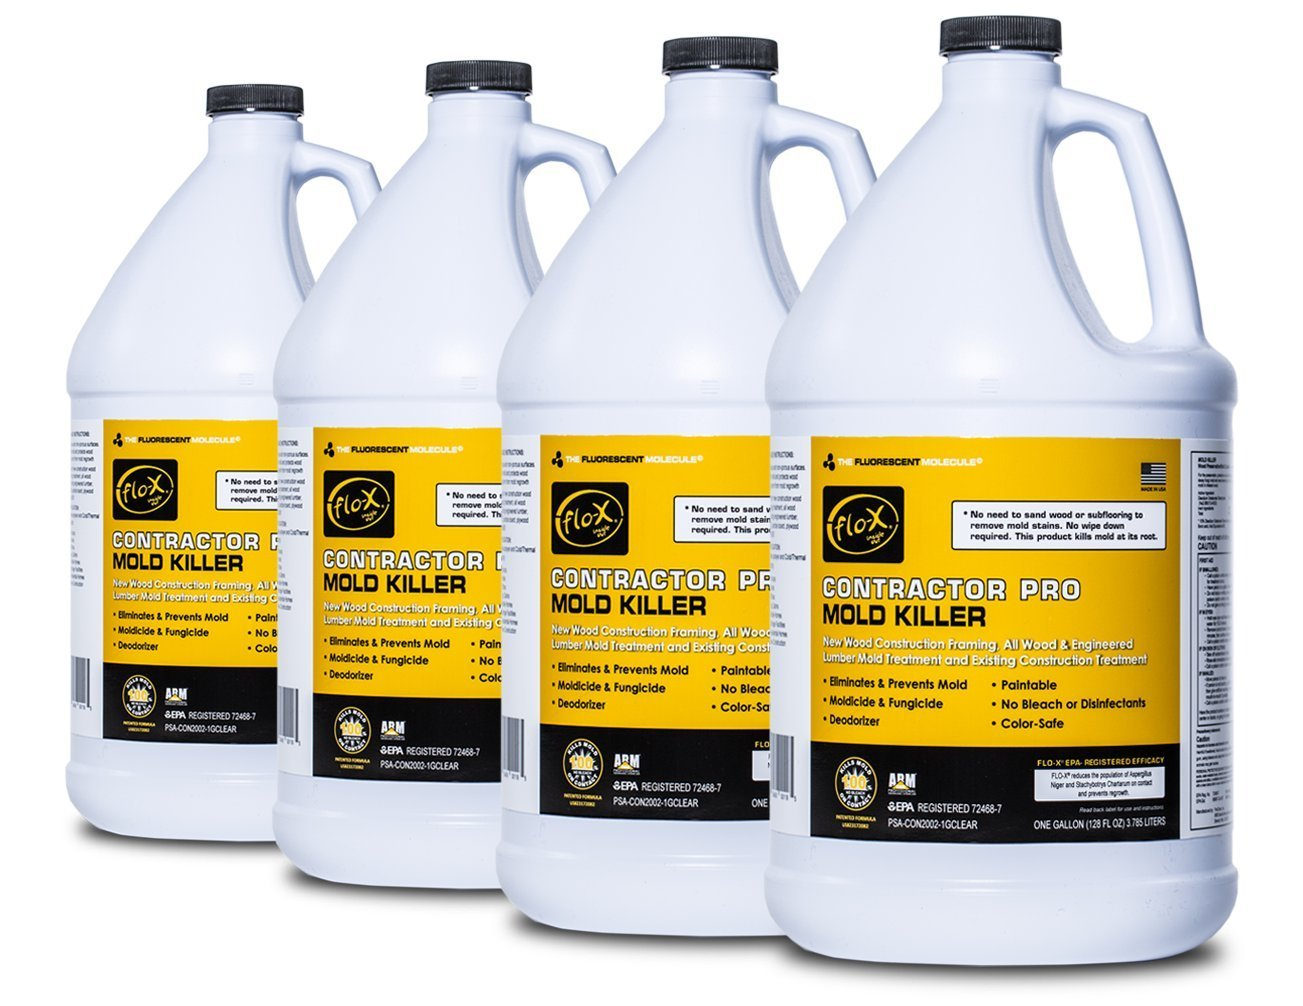 Flo-X Contractor Pro Mold Killer, 1 gal, Set of 4 by FLO-X (Image #1)